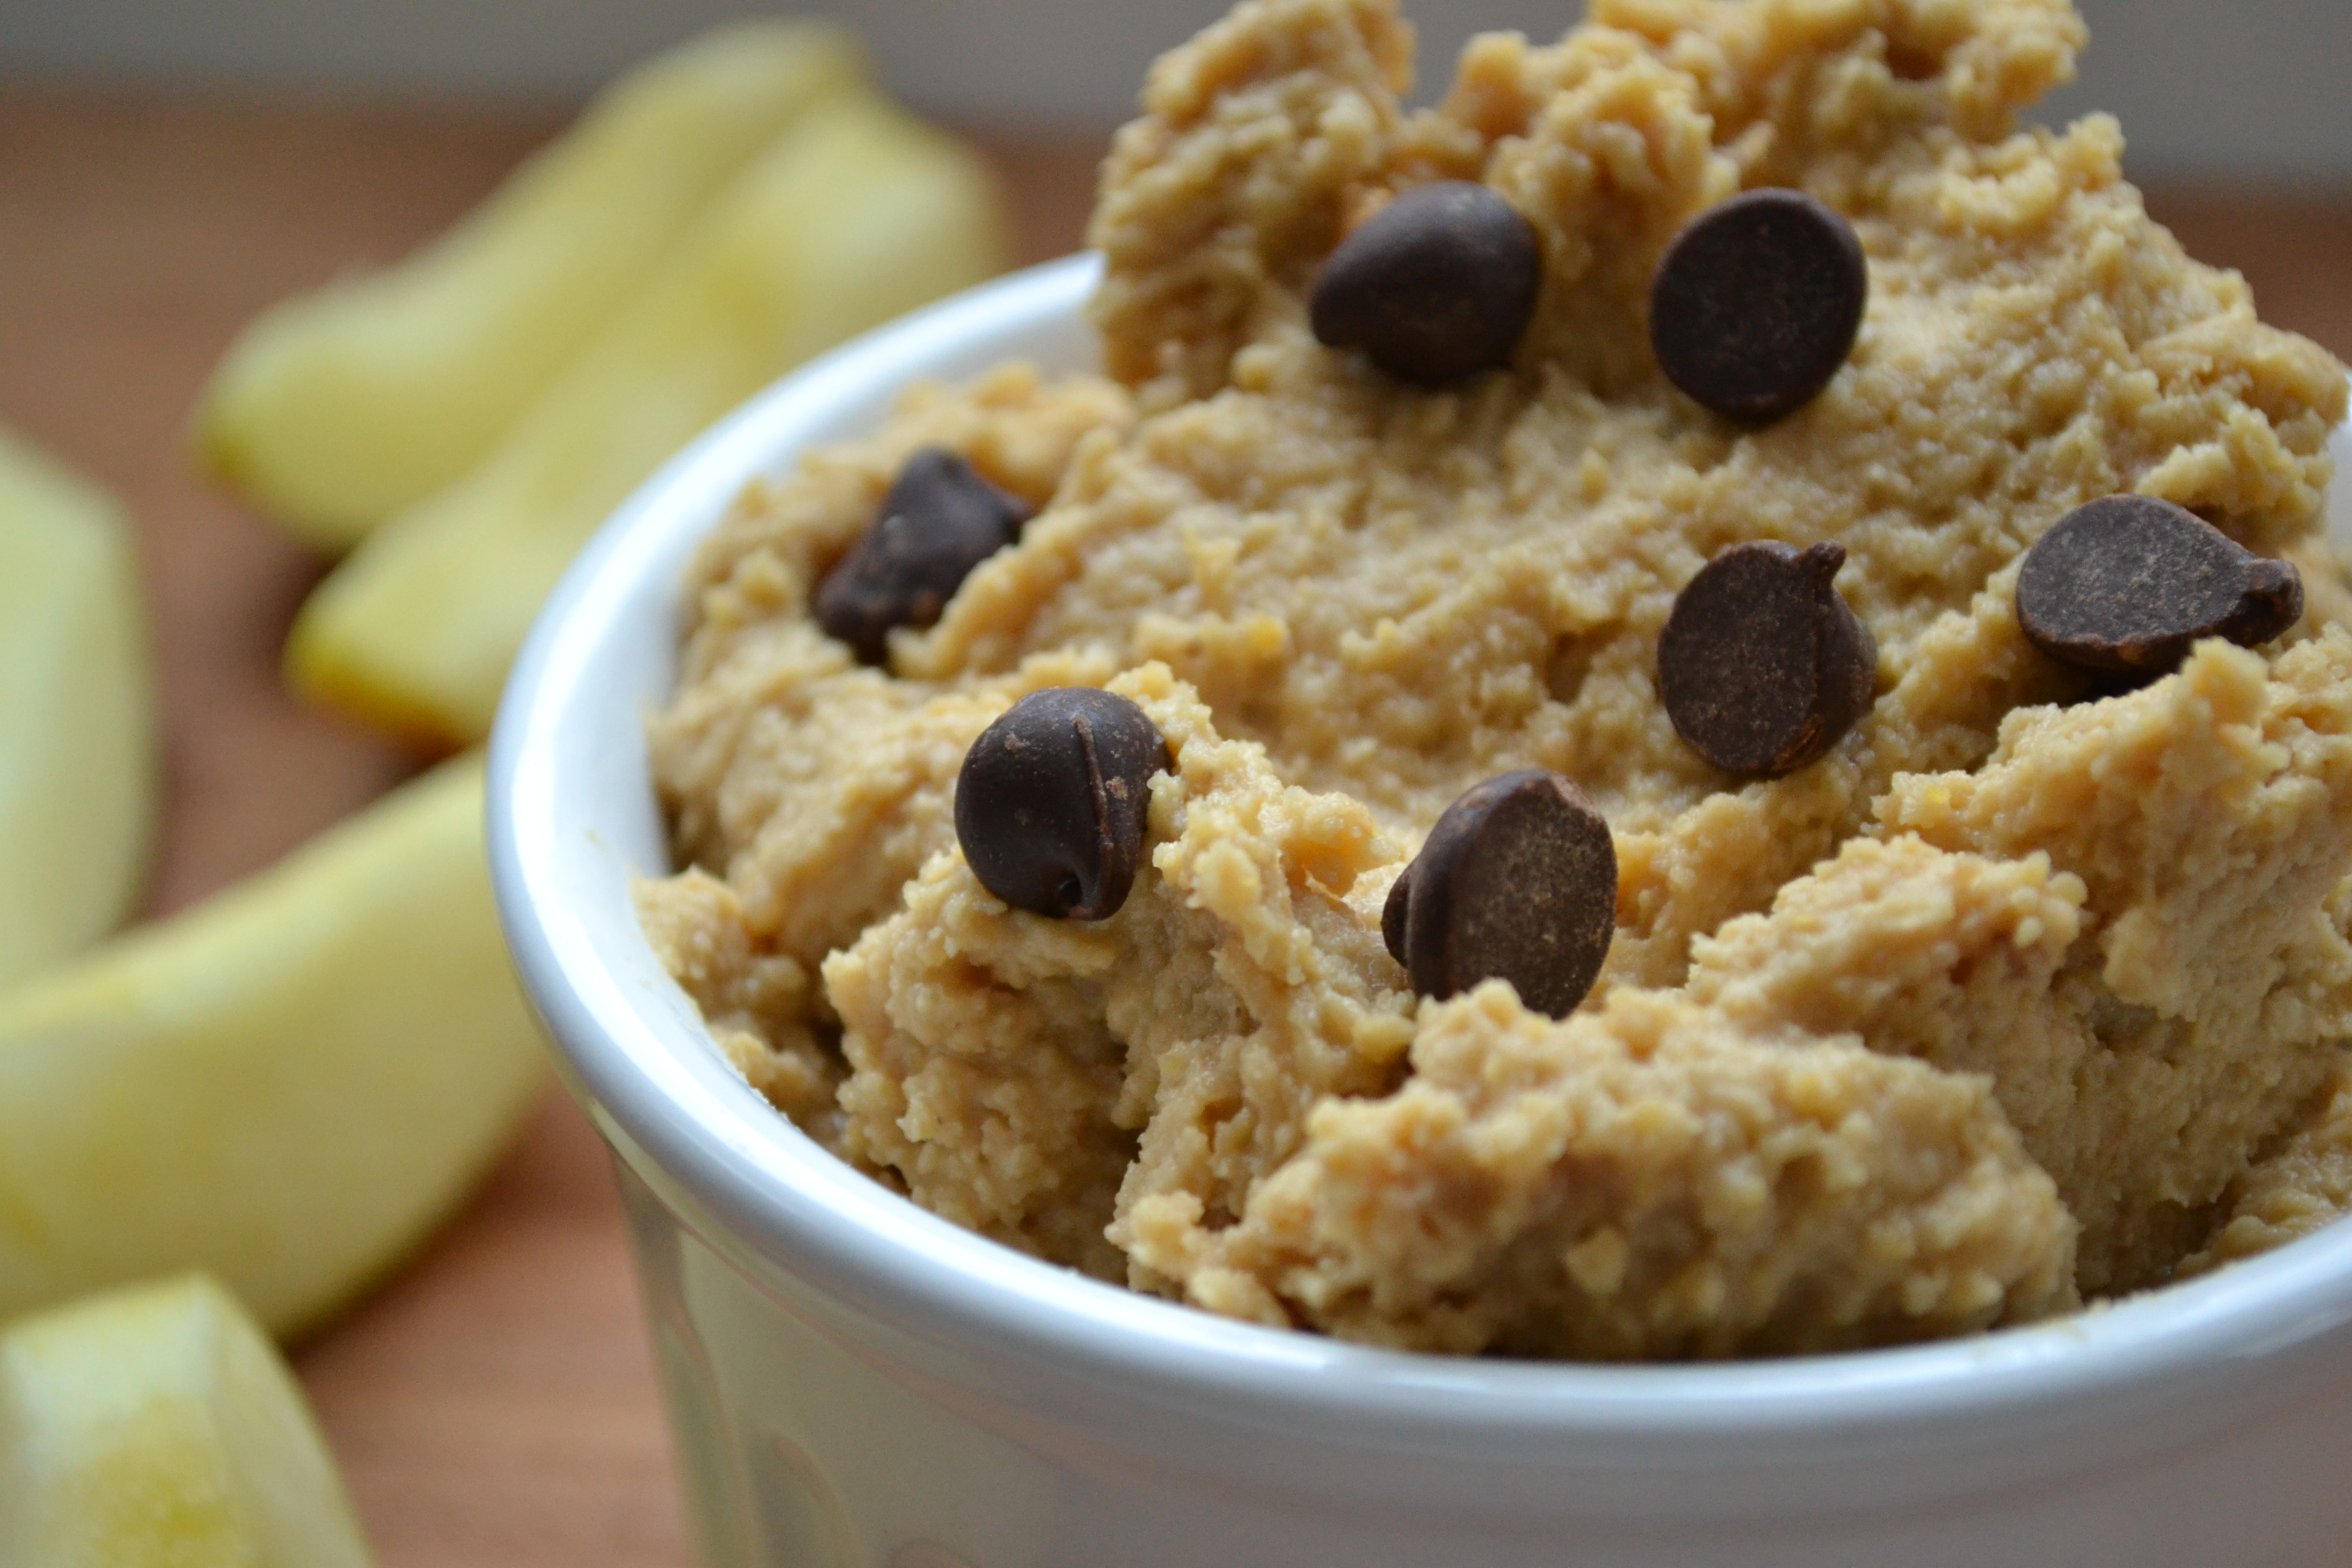 chickpeas 1/4 C natural peanut butter 1/4 C + 2 tbsp maple syrup ...